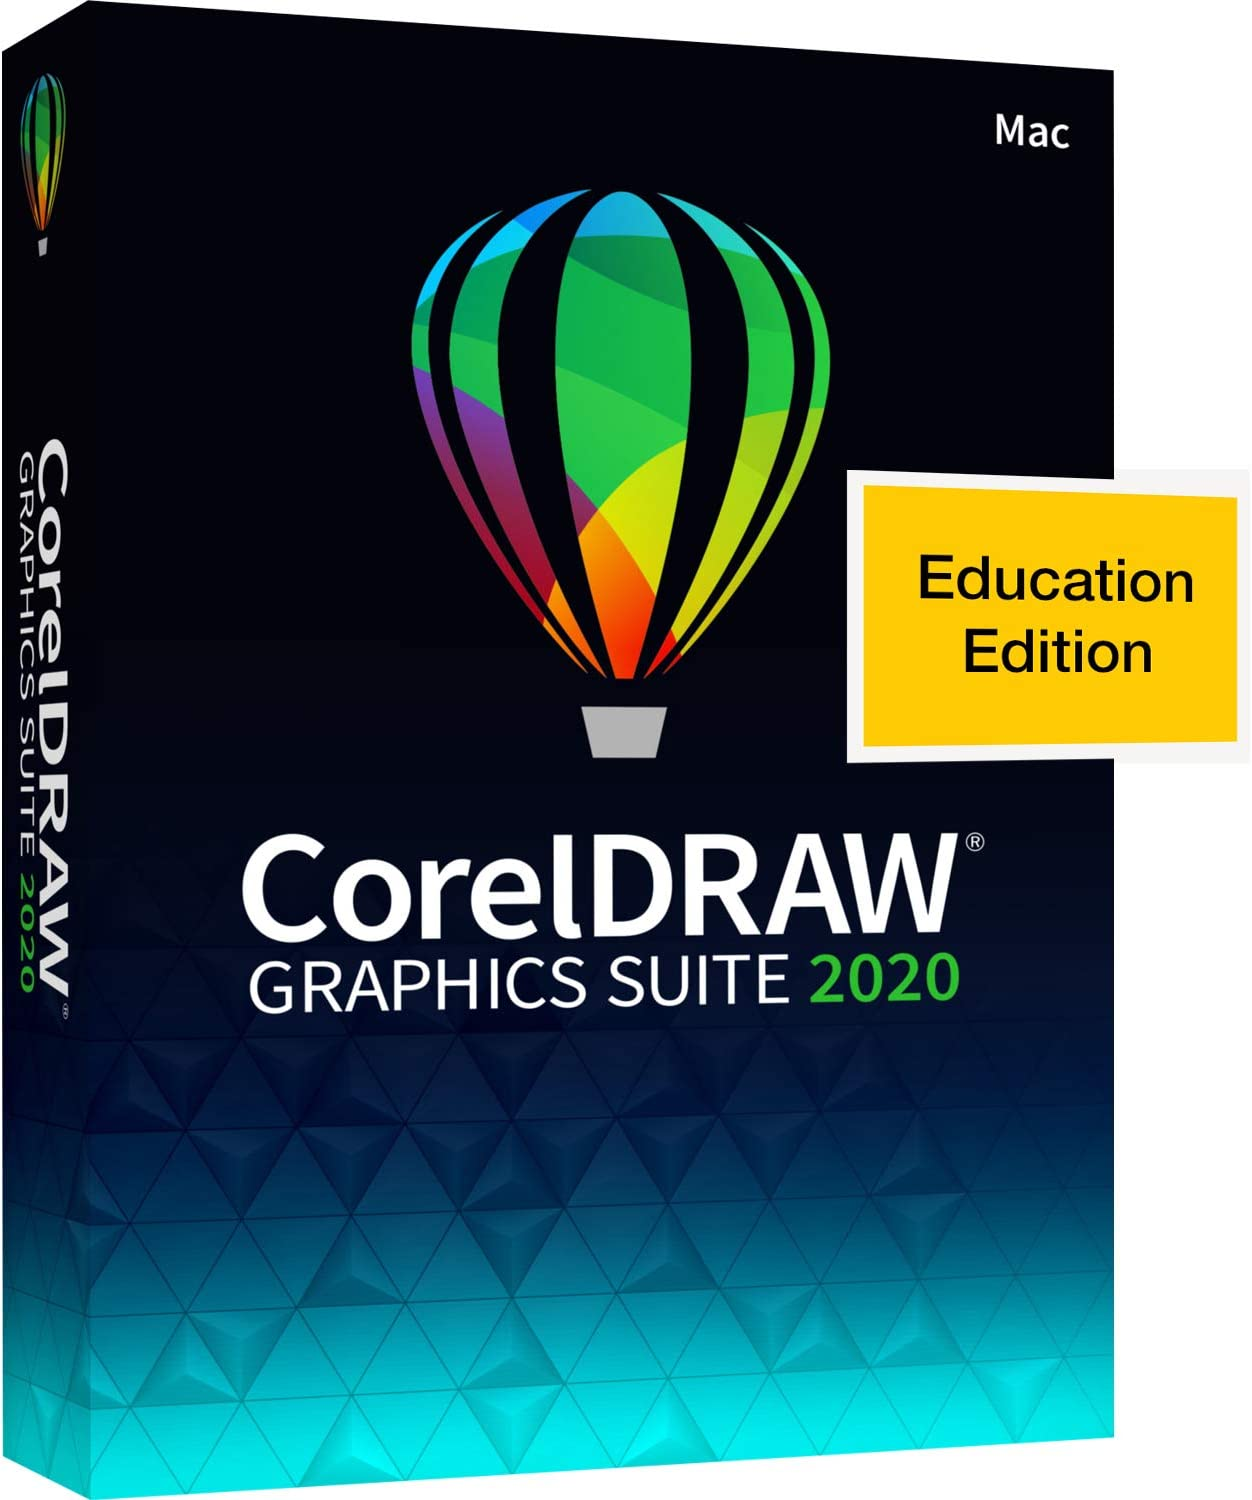 CorelDRAW Graphics Suite 2020 | Graphic Design, Photo, and Vector Illustration Software | Education Edition [Mac Key Card]